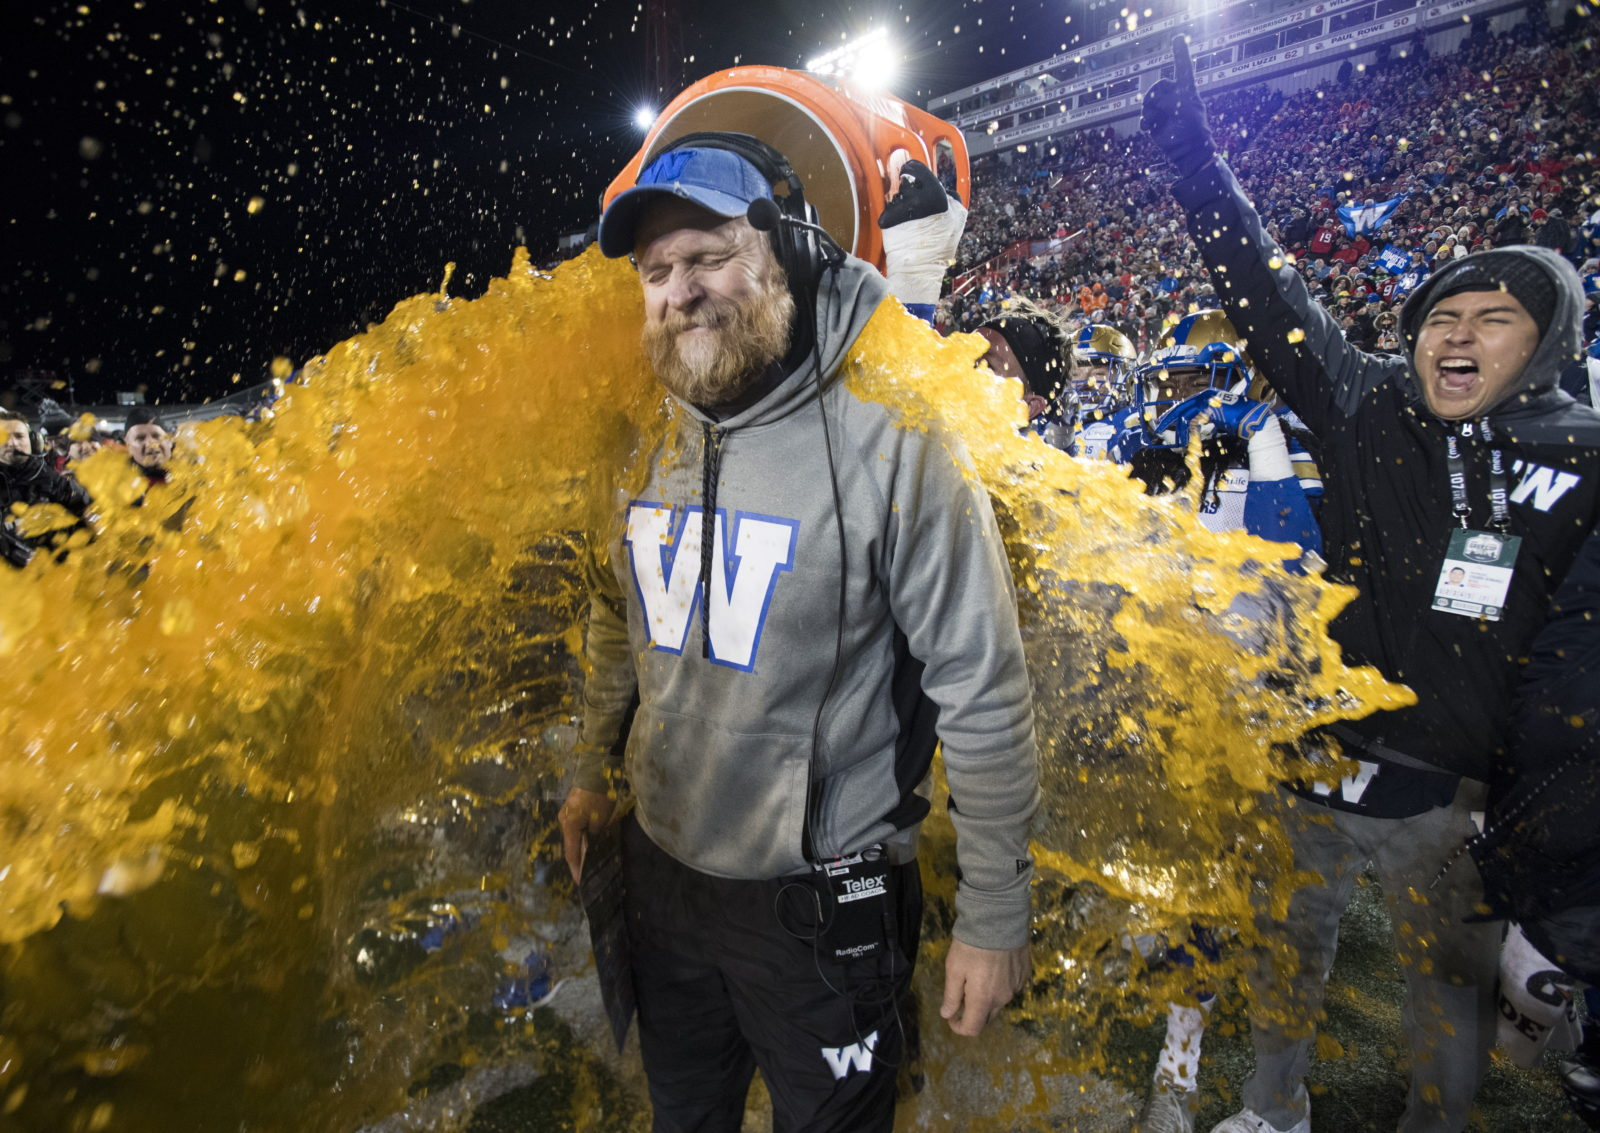 Winnipeg Blue Bombers head coach Mike O'Shea gets a sports drink poured over him as his team defeats the Hamilton Tiger Cats in the 107th Grey Cup in Calgary, Alta., Sunday, November 24, 2019. THE CANADIAN PRESS/Frank Gunn